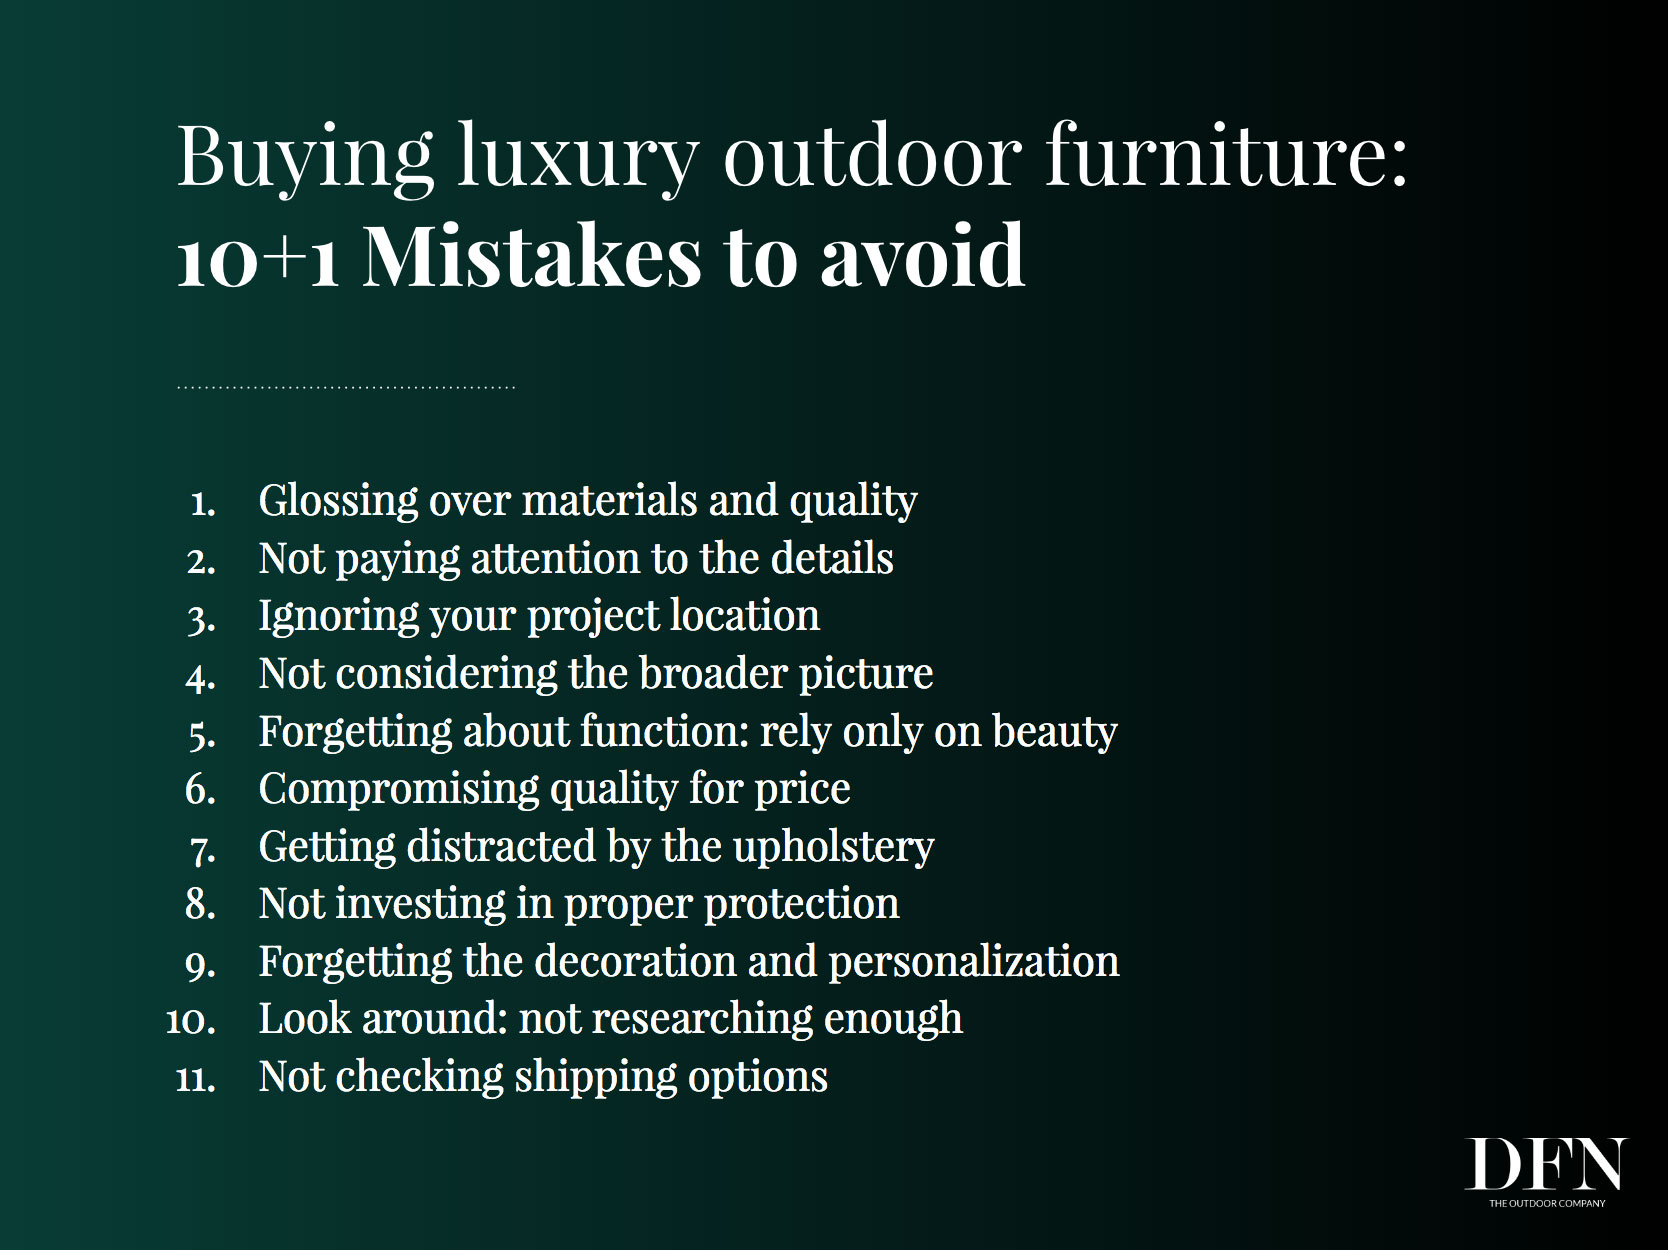 The luxury outdoor furniture buying guide for designers & architects